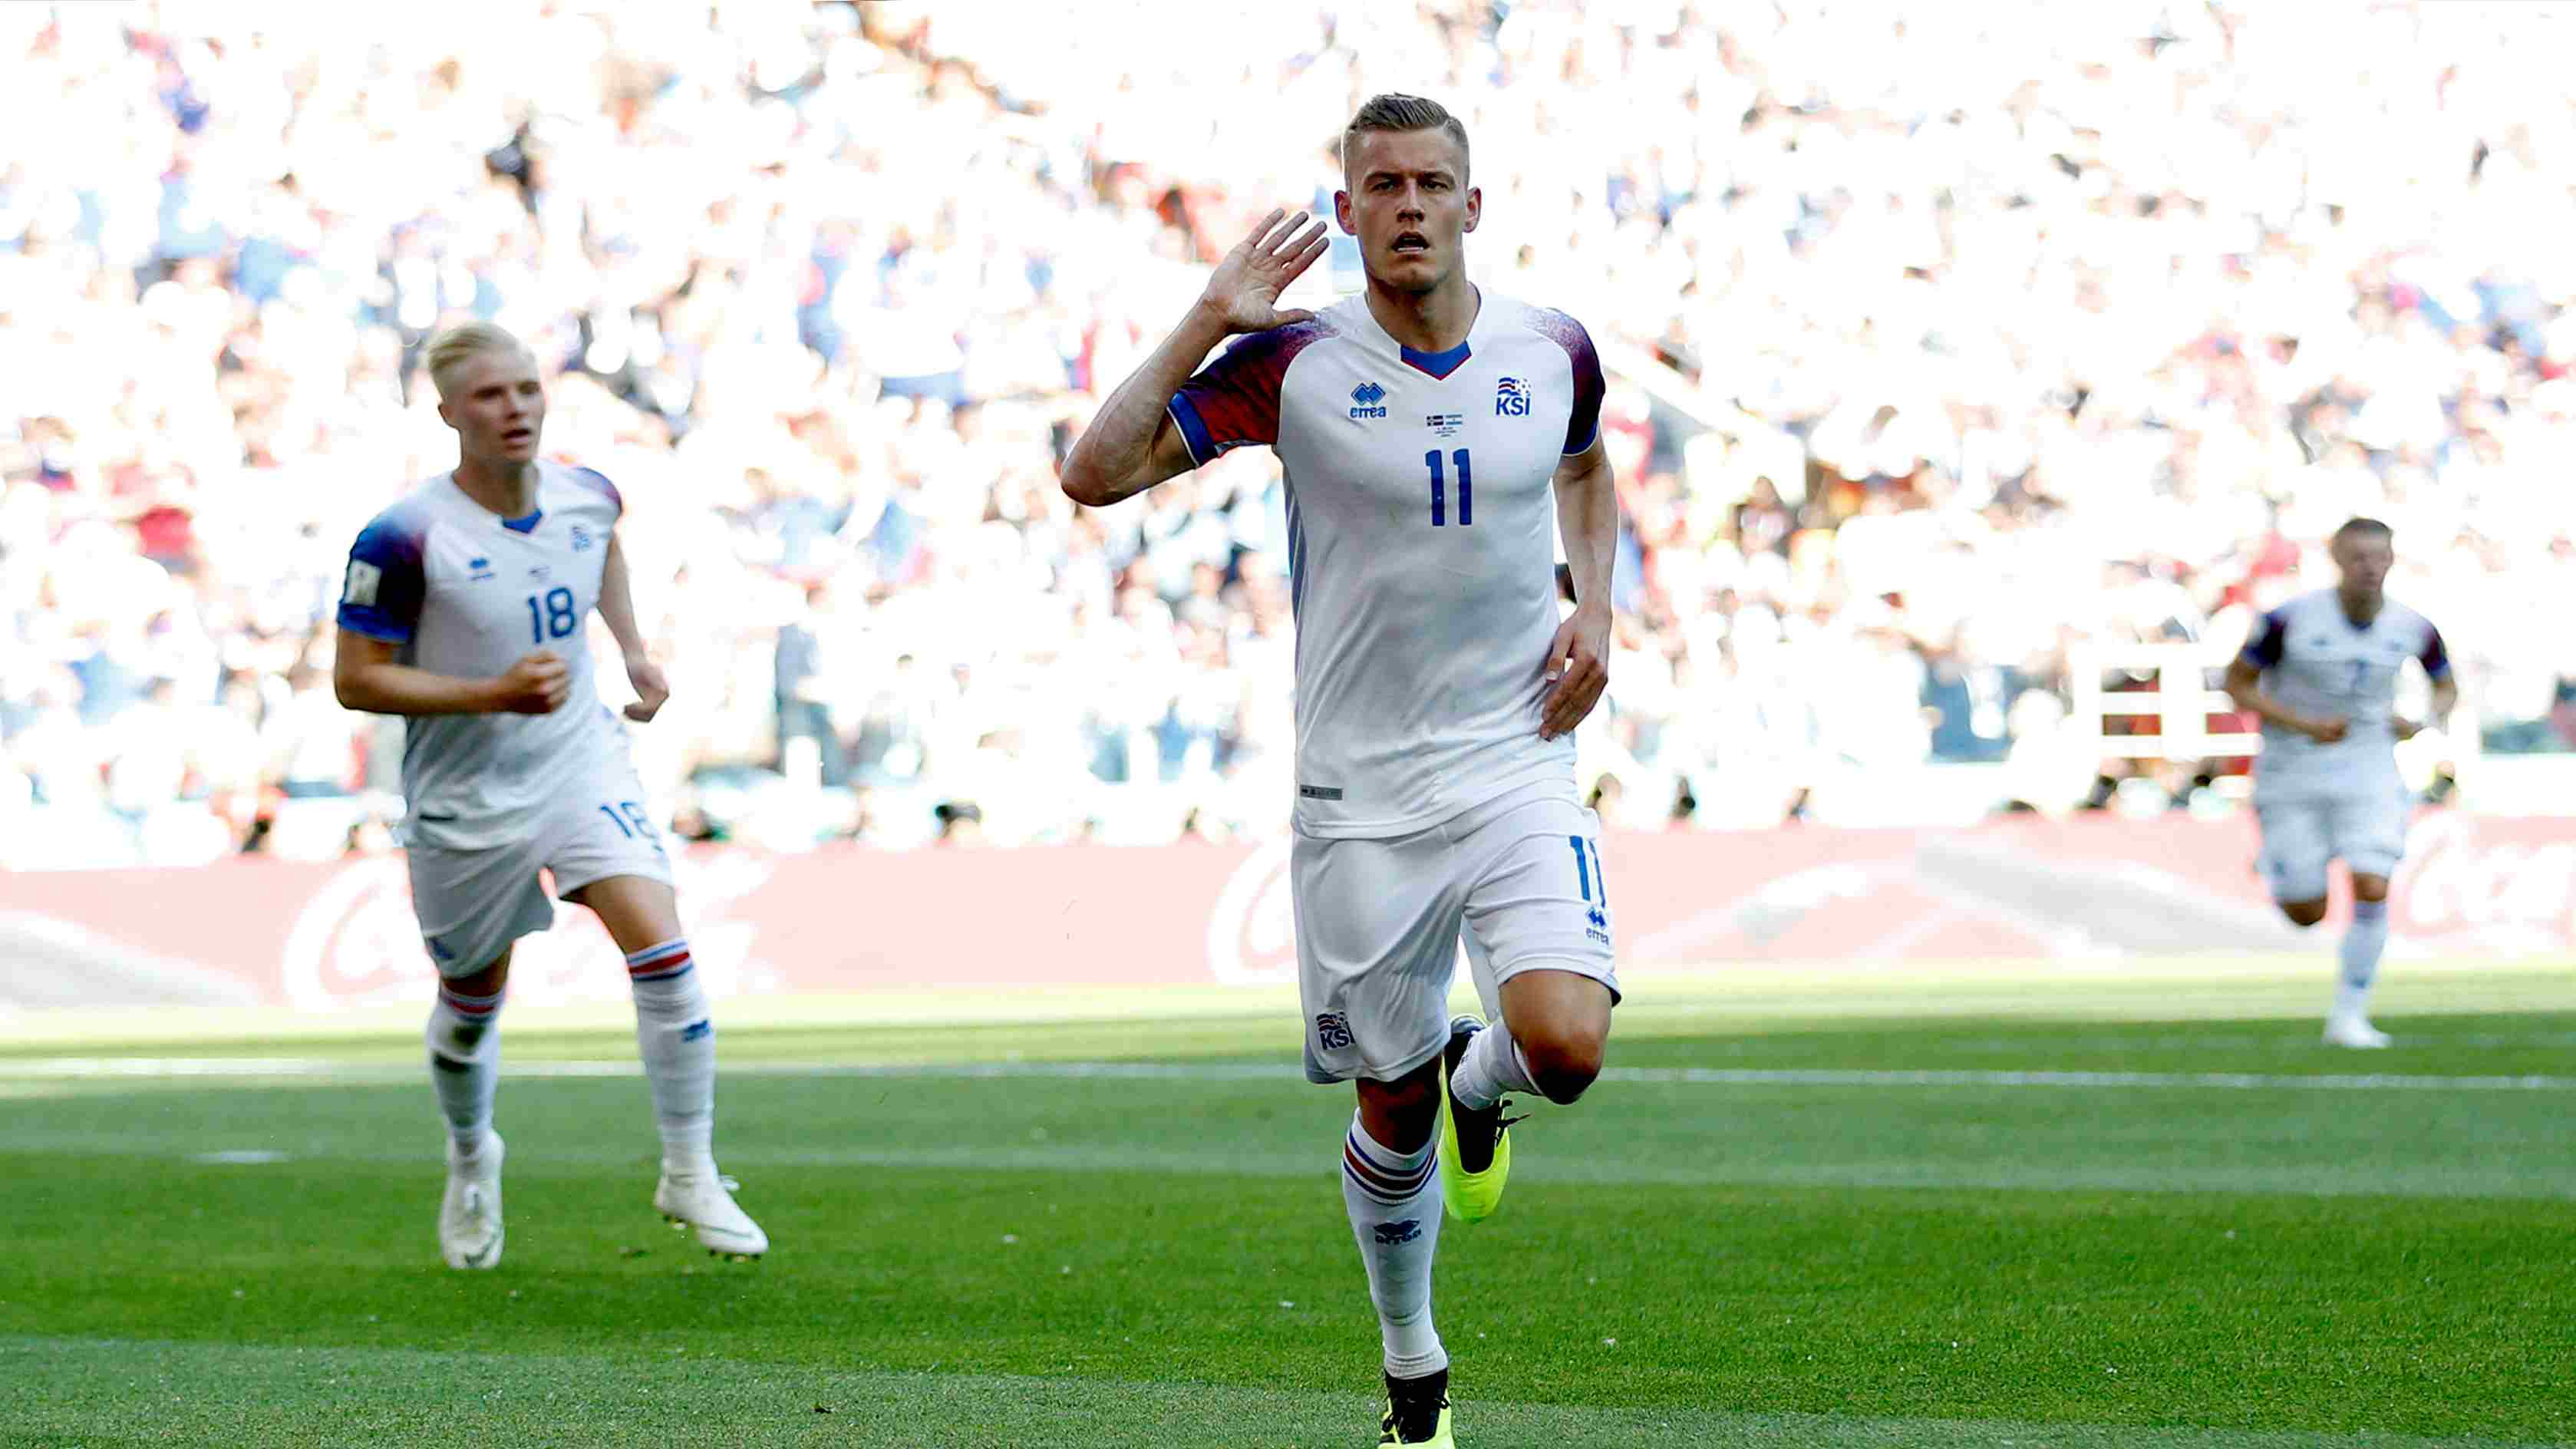 Iceland drags Argentina to a draw with first World Cup goal